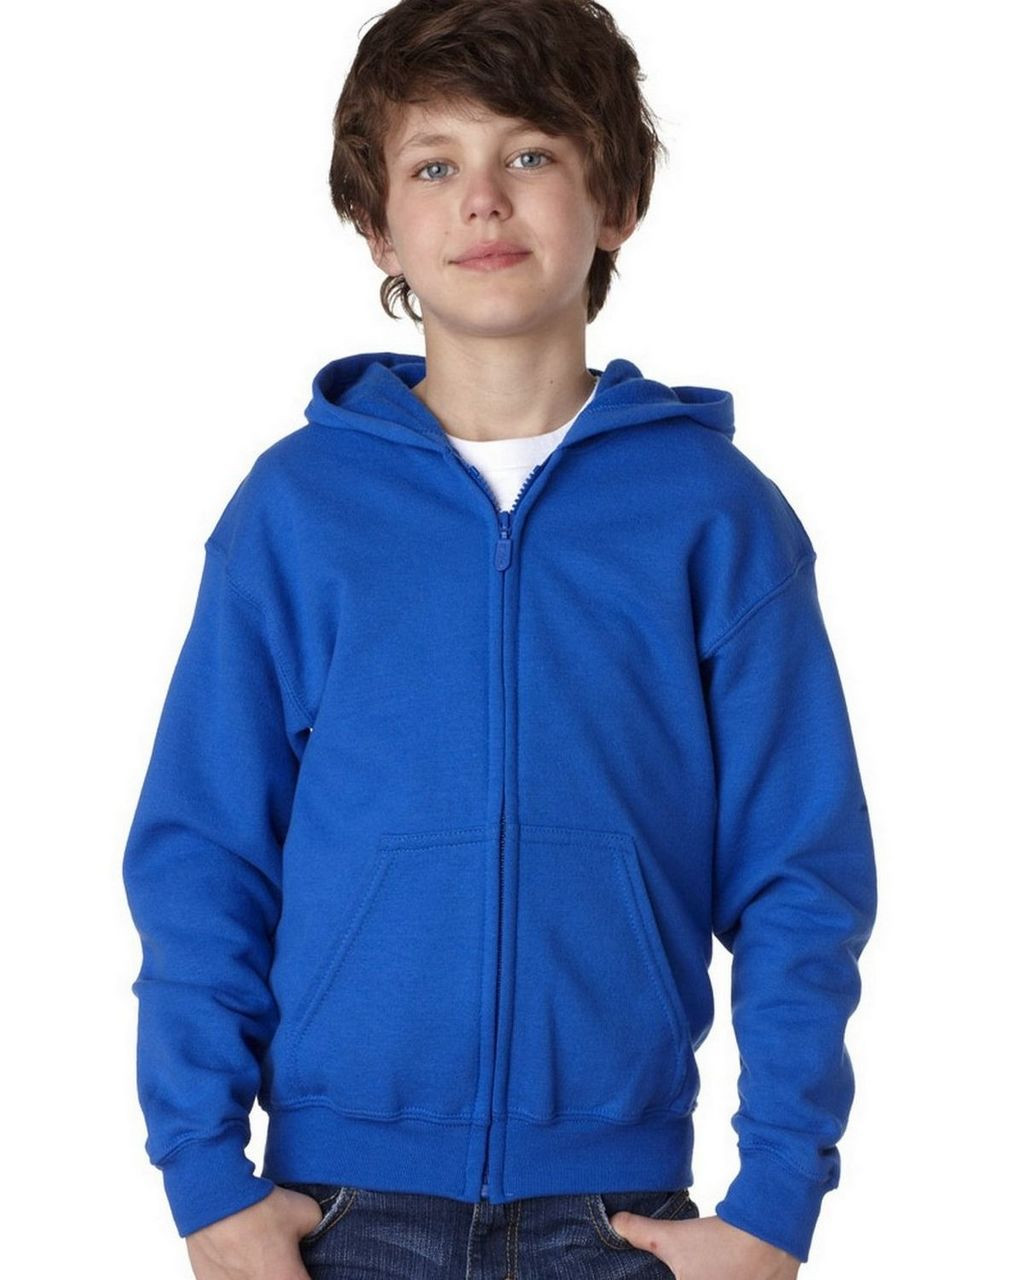 Royal - 18600B Gildan Youth Full Zip Hoodie | T-shirt.ca